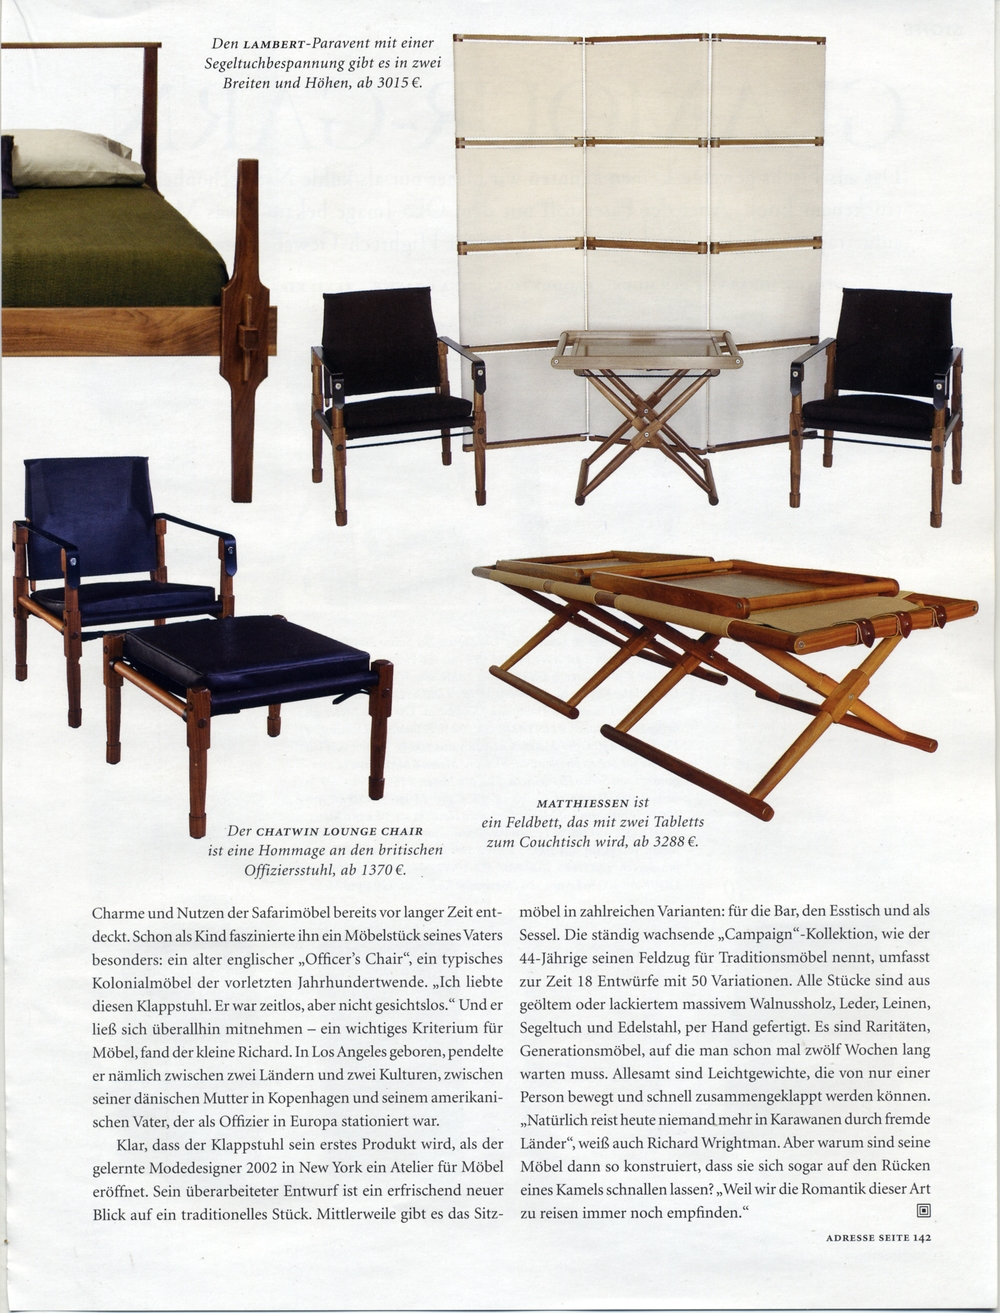 See:  Chatwin Lounge Chair ,  Matthiessen Cot/Coffee Table ,  Matthiessen Tray Table , and  Lambert Screen